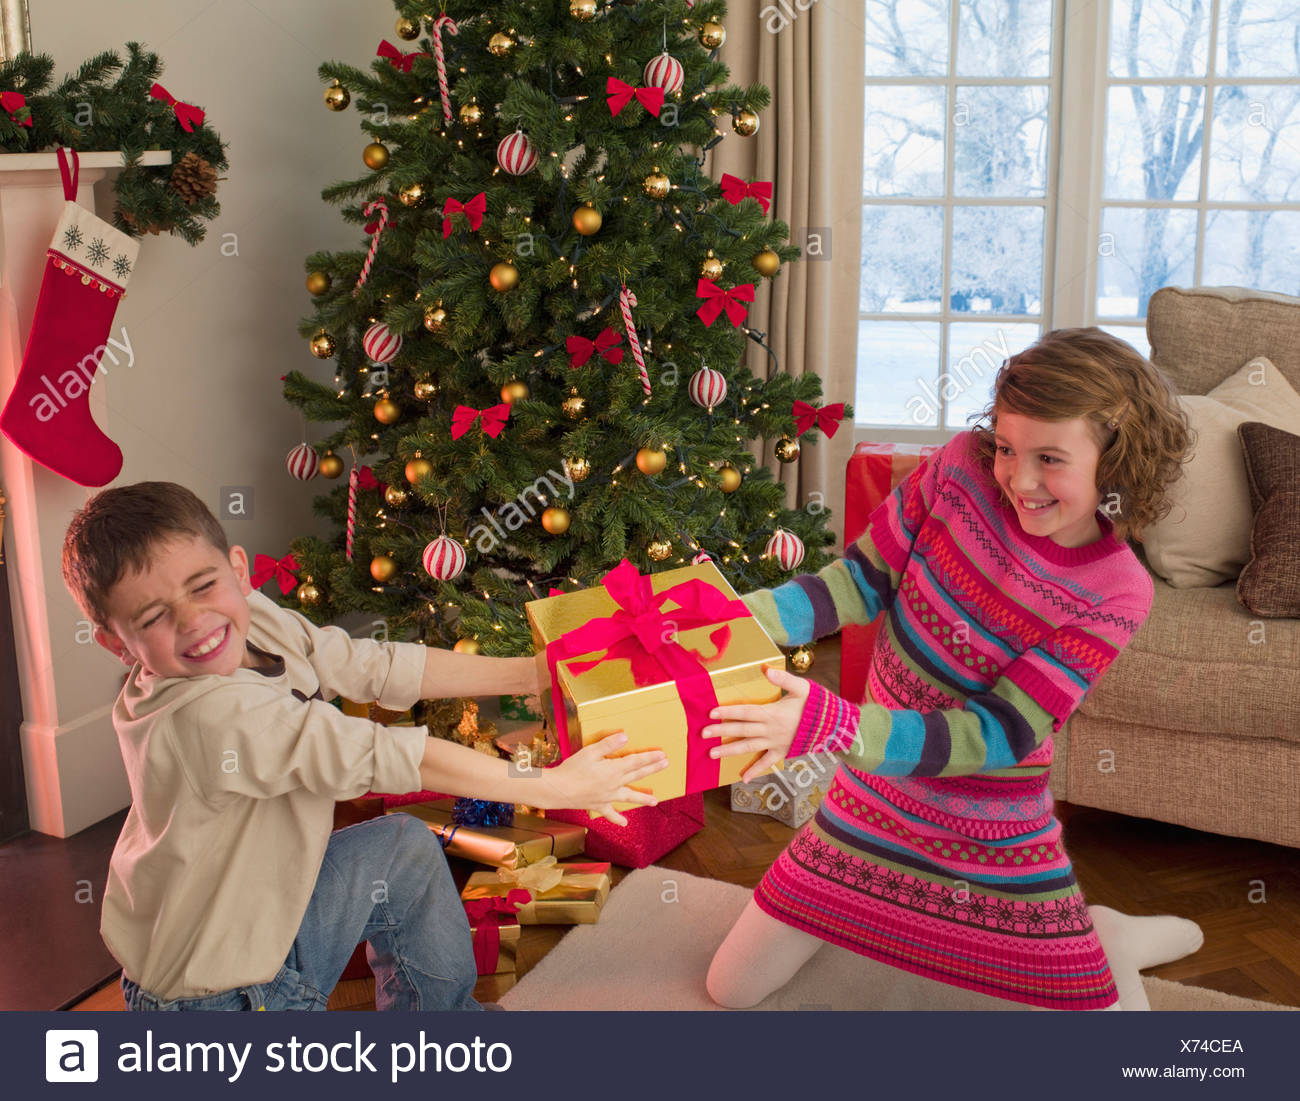 Boy and girl tugging at Christmas gift in living room - Stock Image